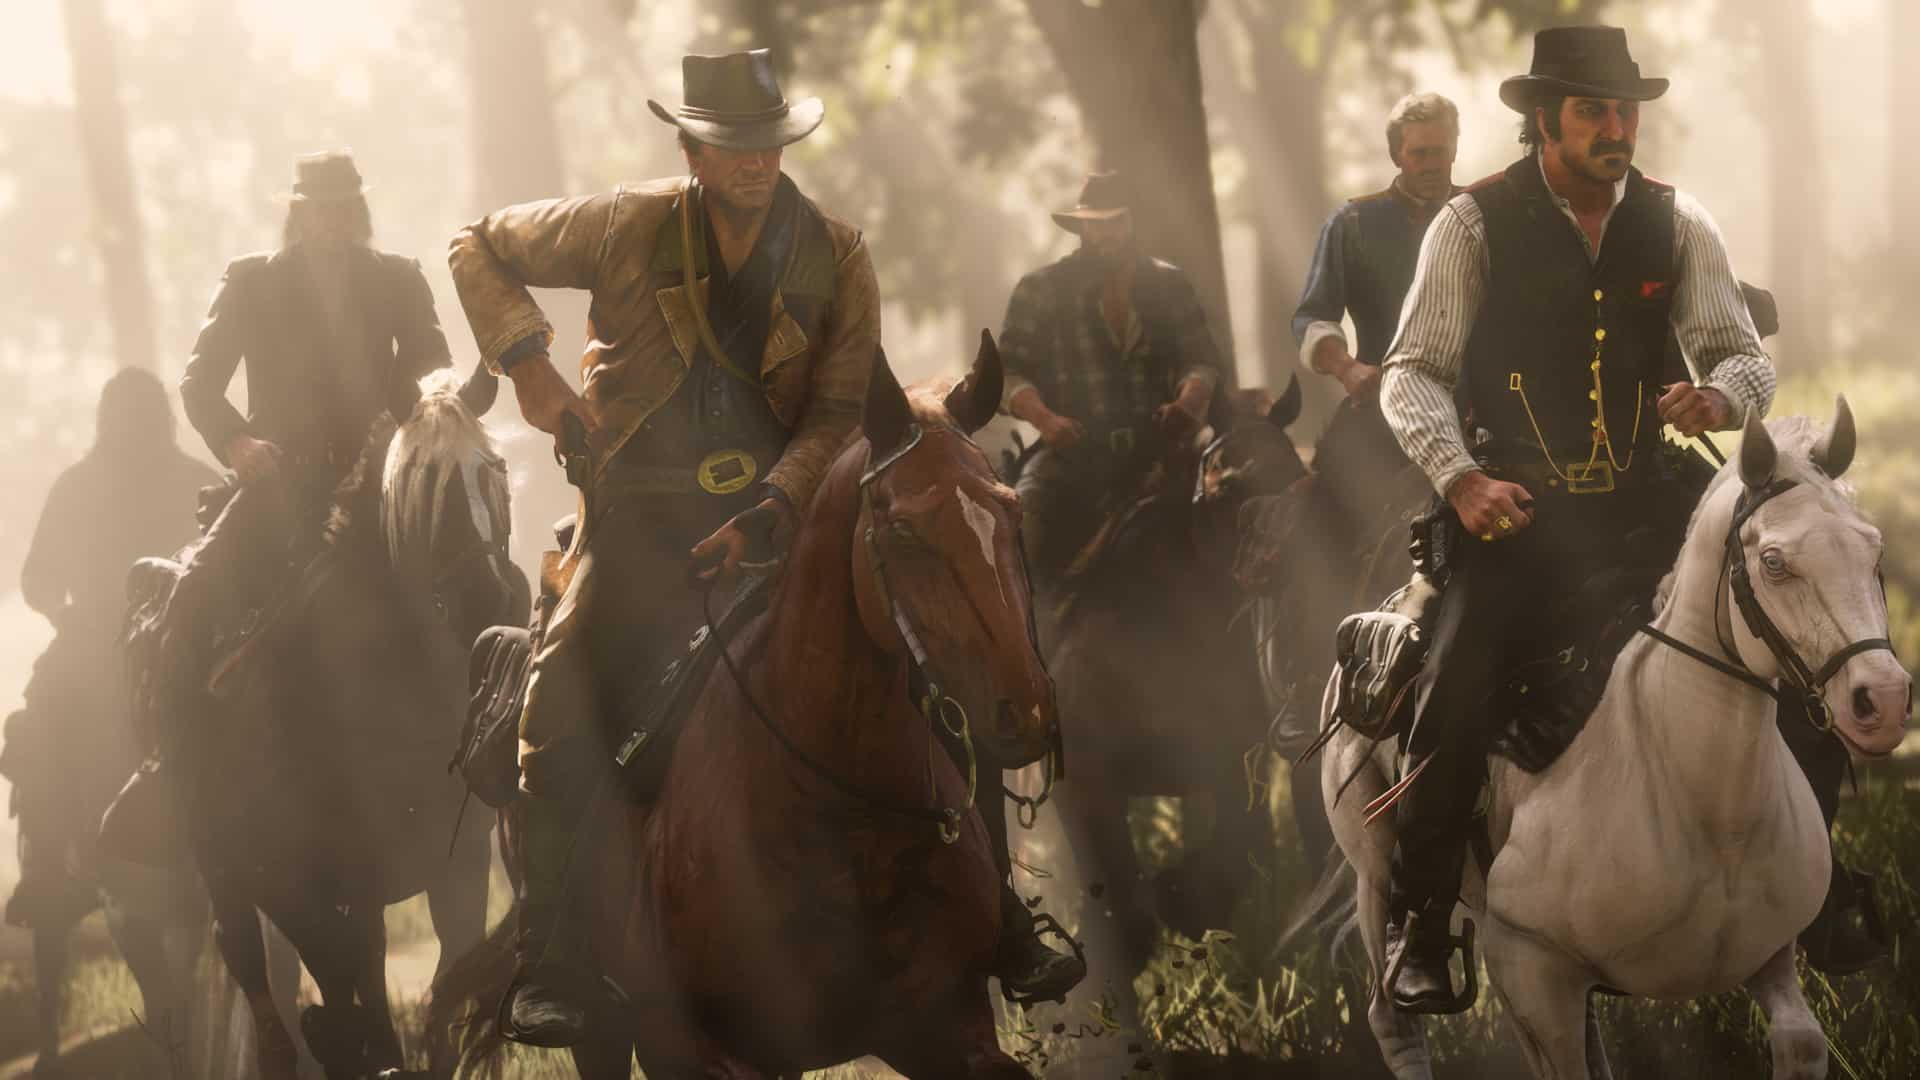 Red Dead Redemption 2 Playstation 4 Review What Kind Of Man Are You